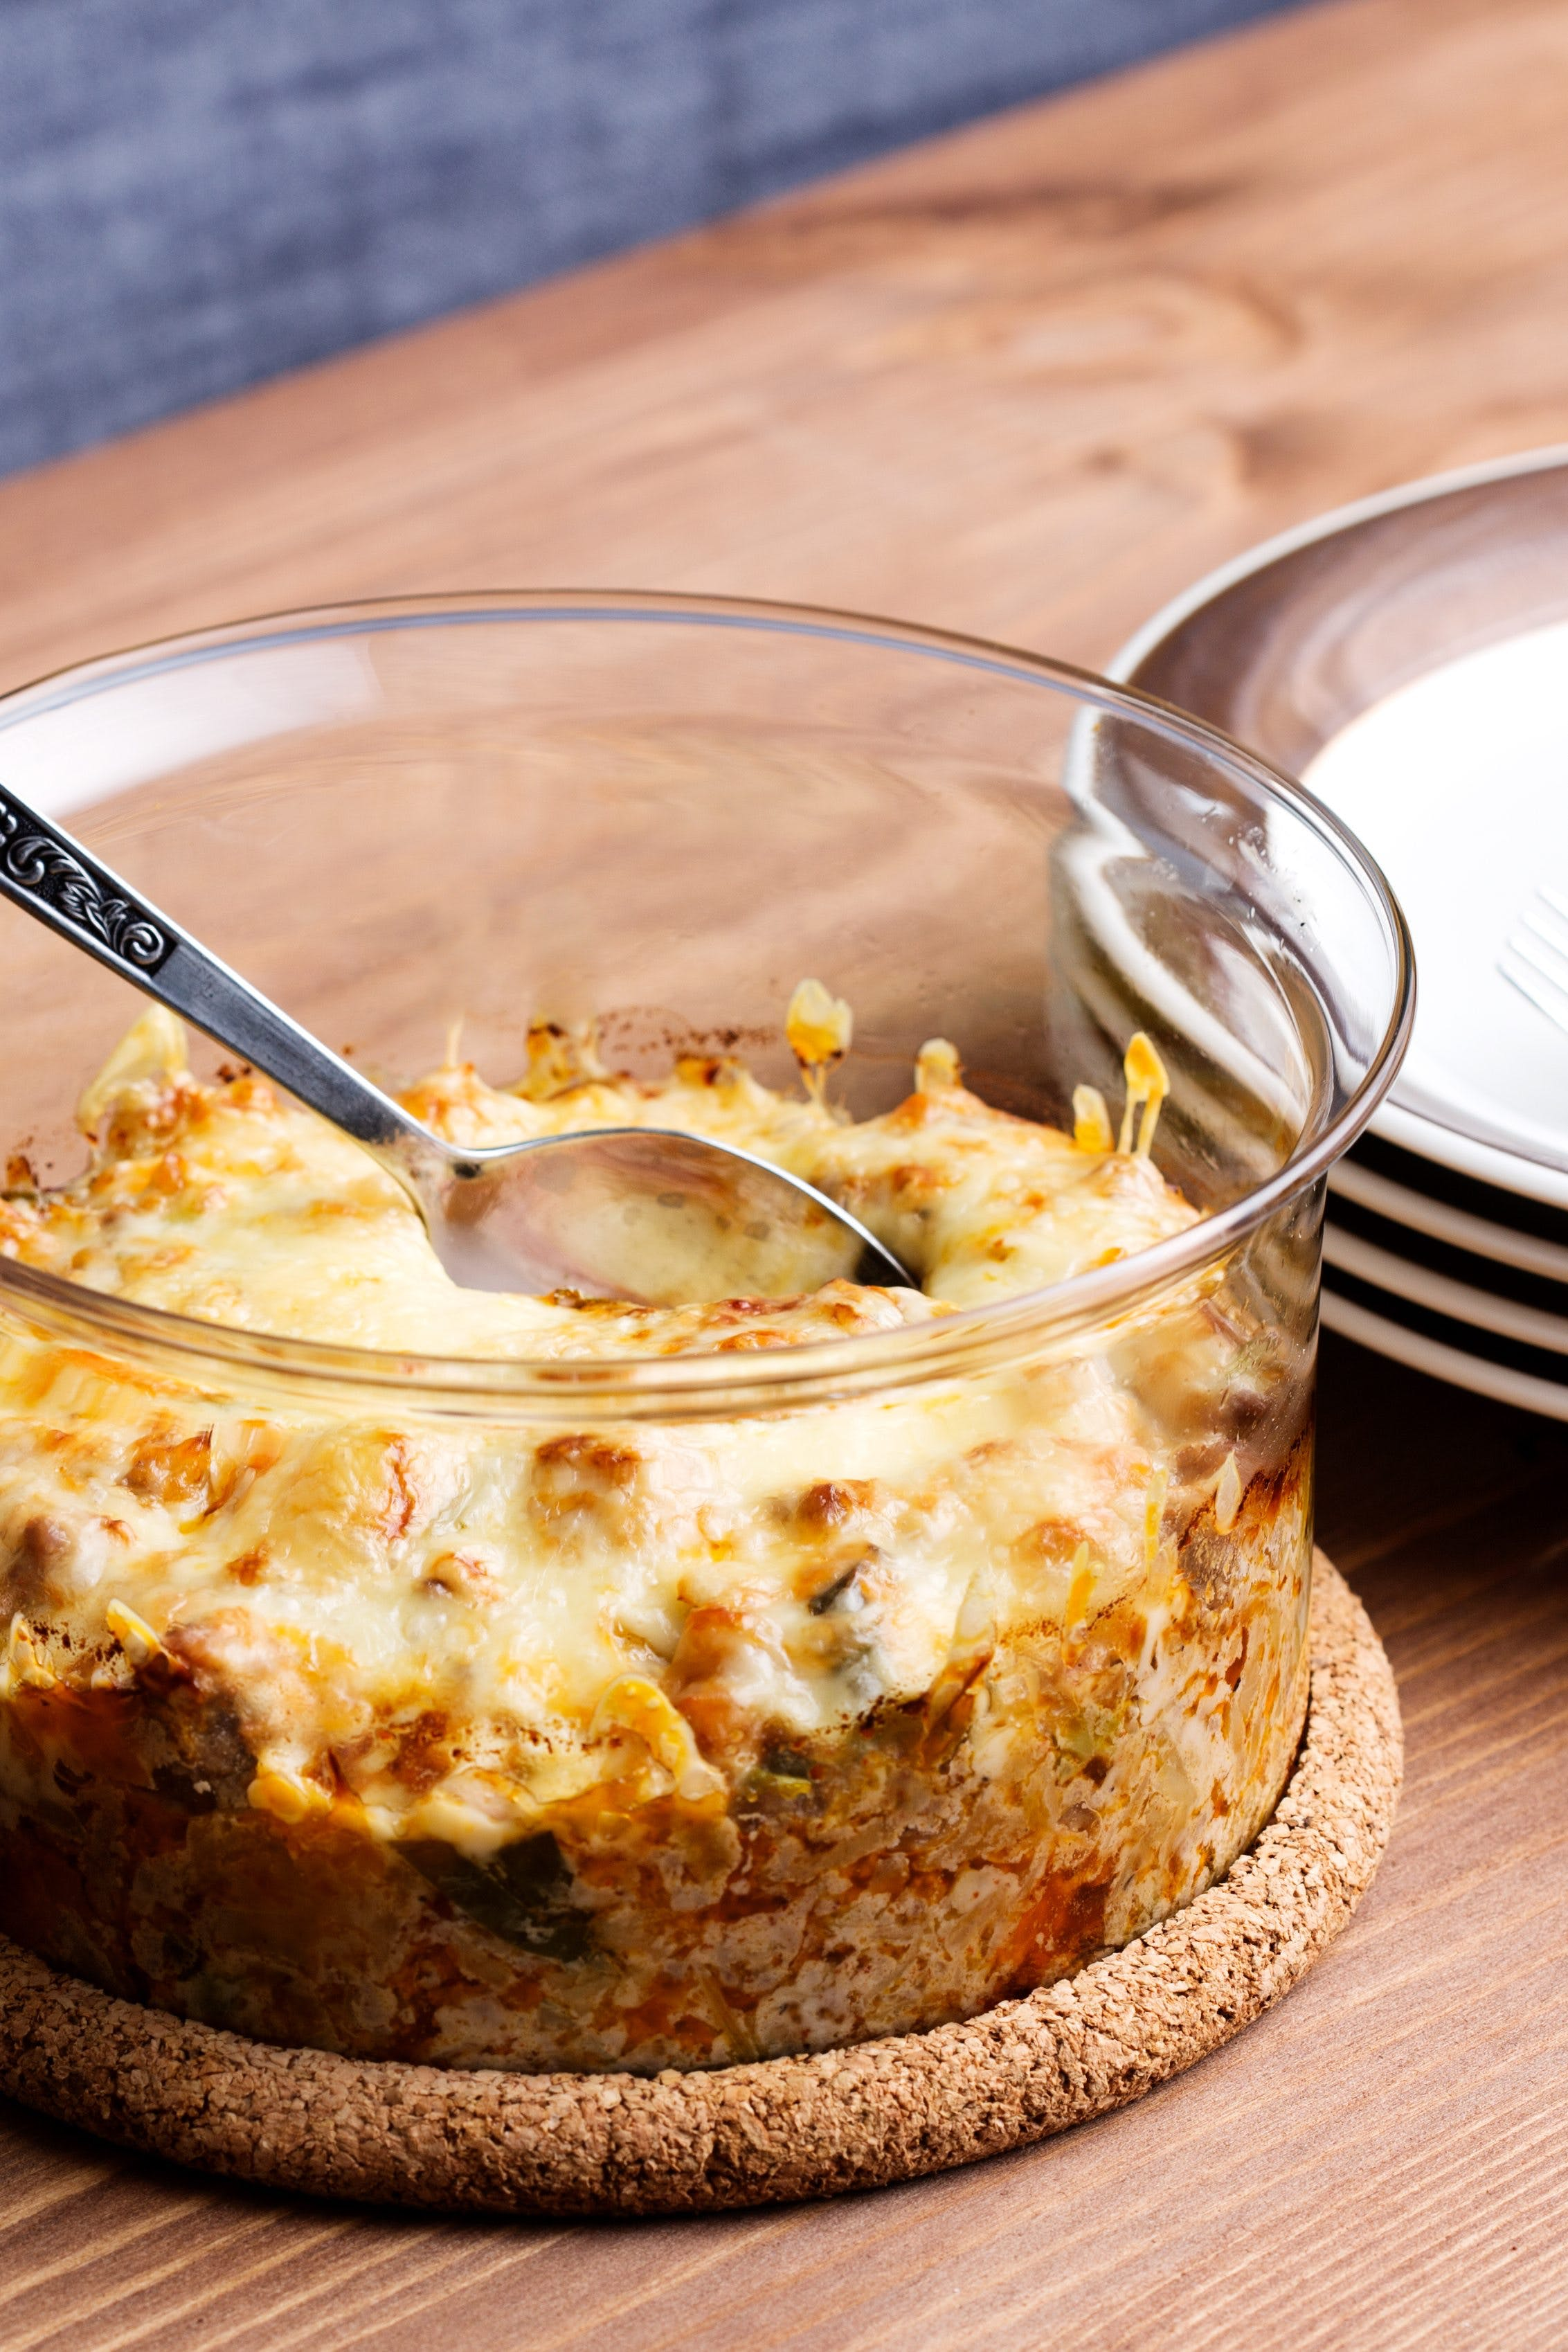 Stuffed low-carb cabbage casserole